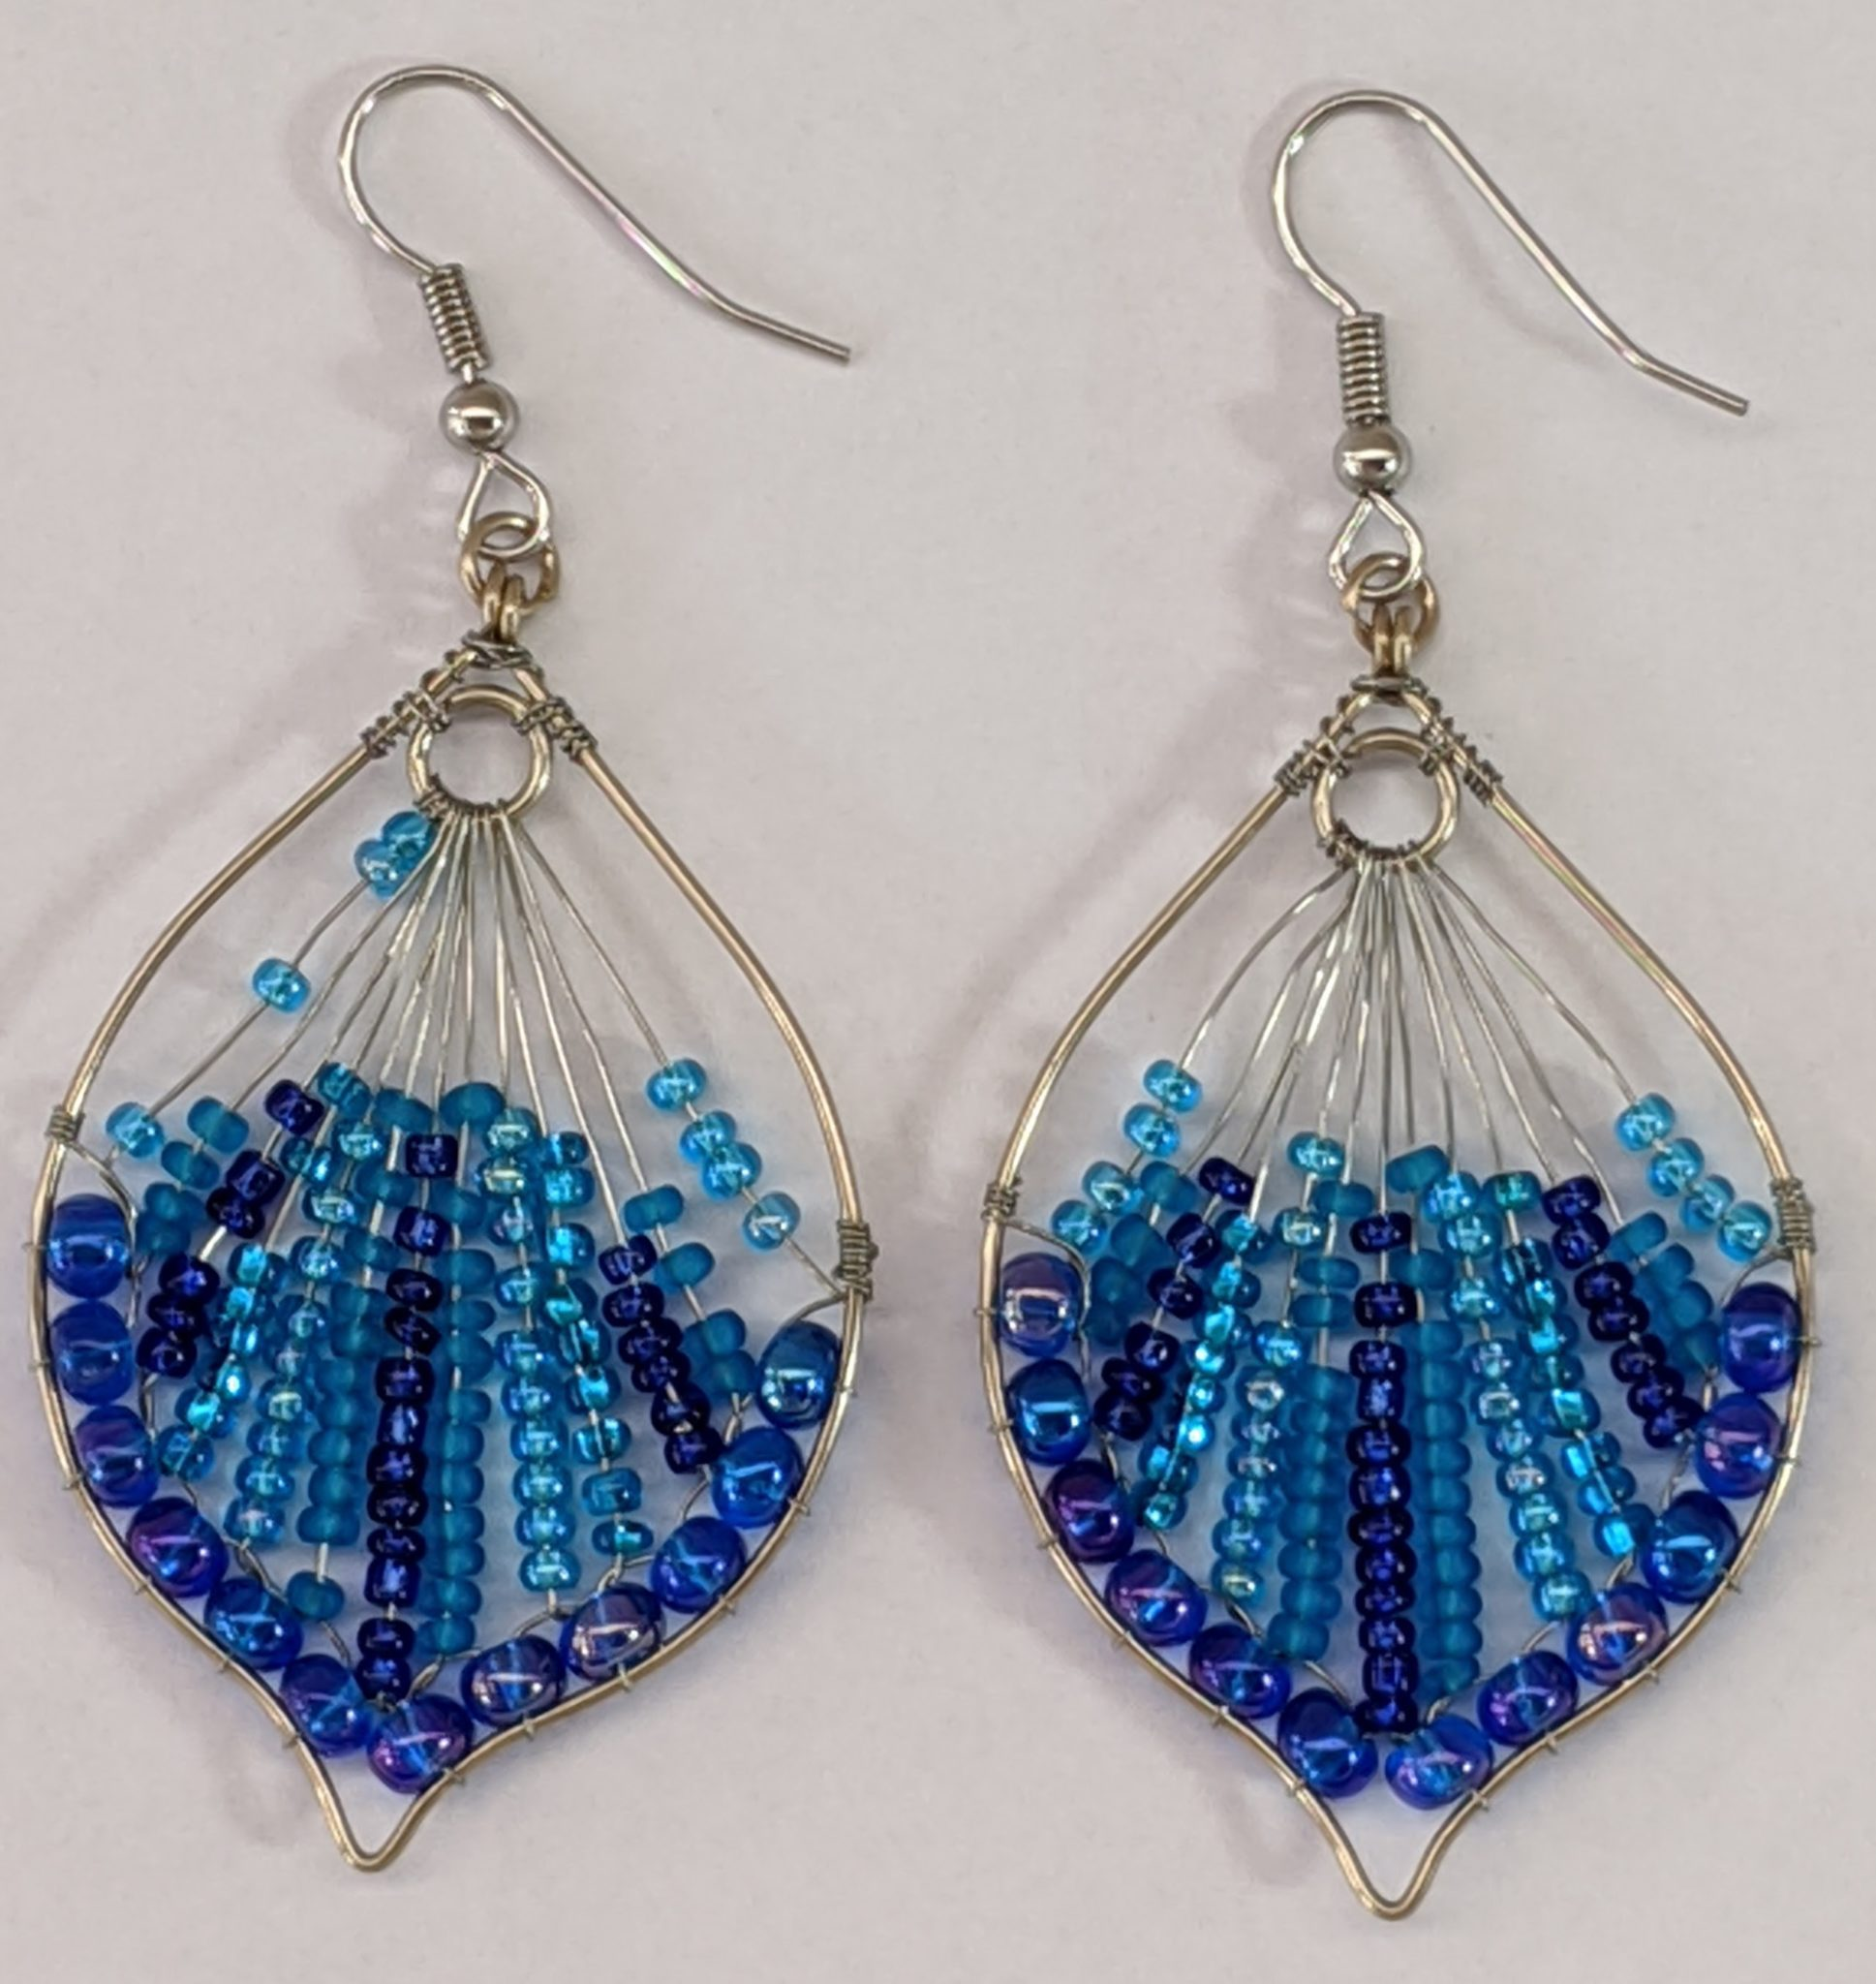 Peacock Tail Beaded Earrings - Blues